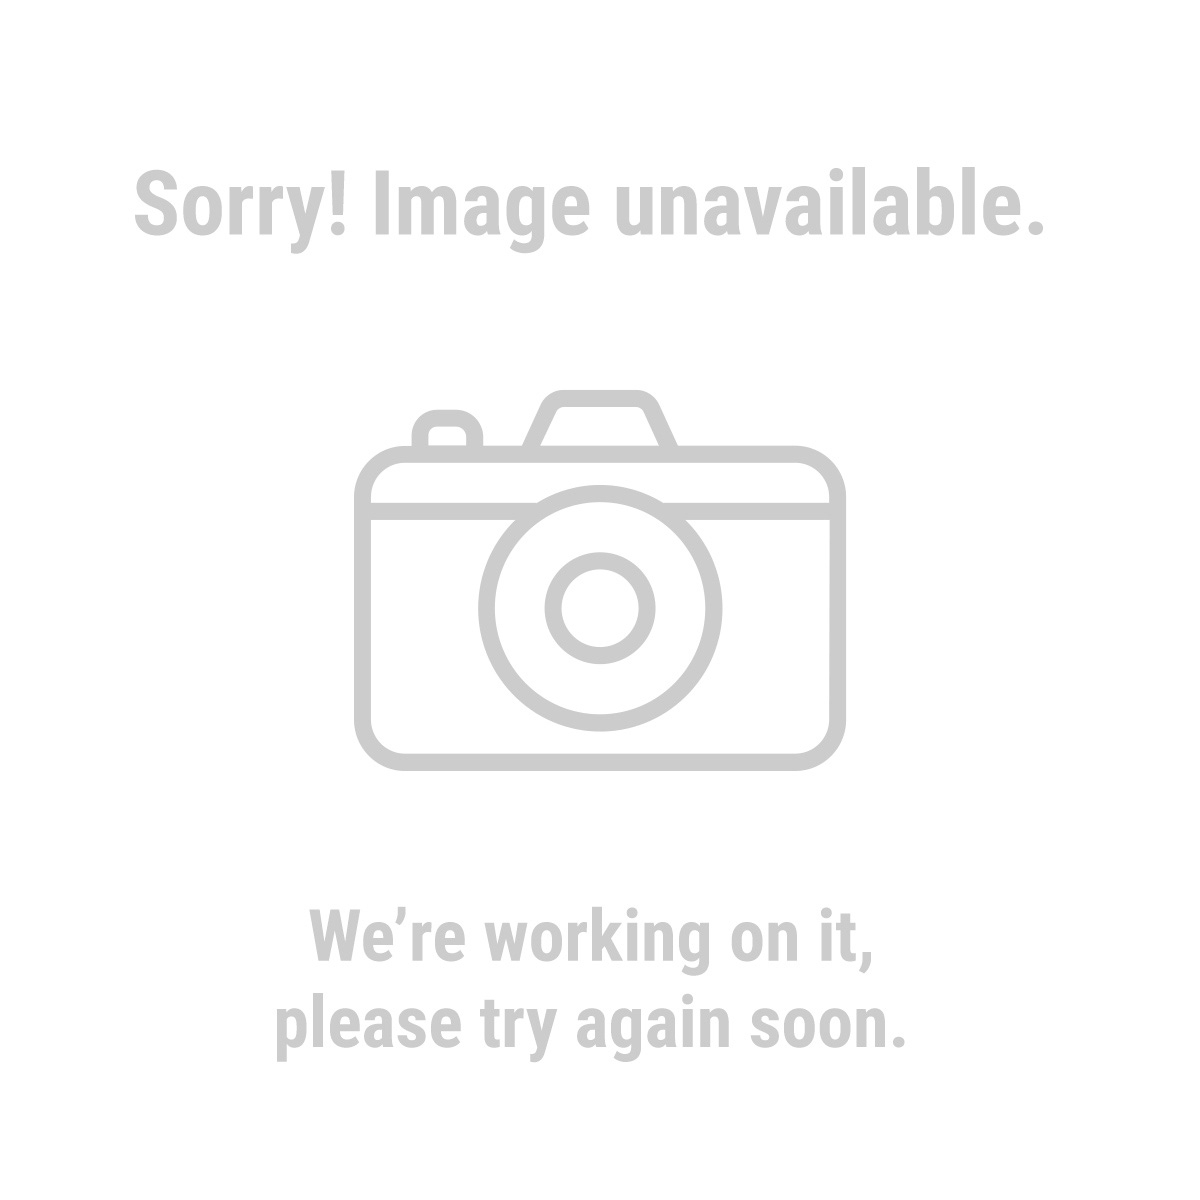 Pittsburgh Automotive 61522 1/2 Ton Capacity Pickup Truck Crane with Cable Winch